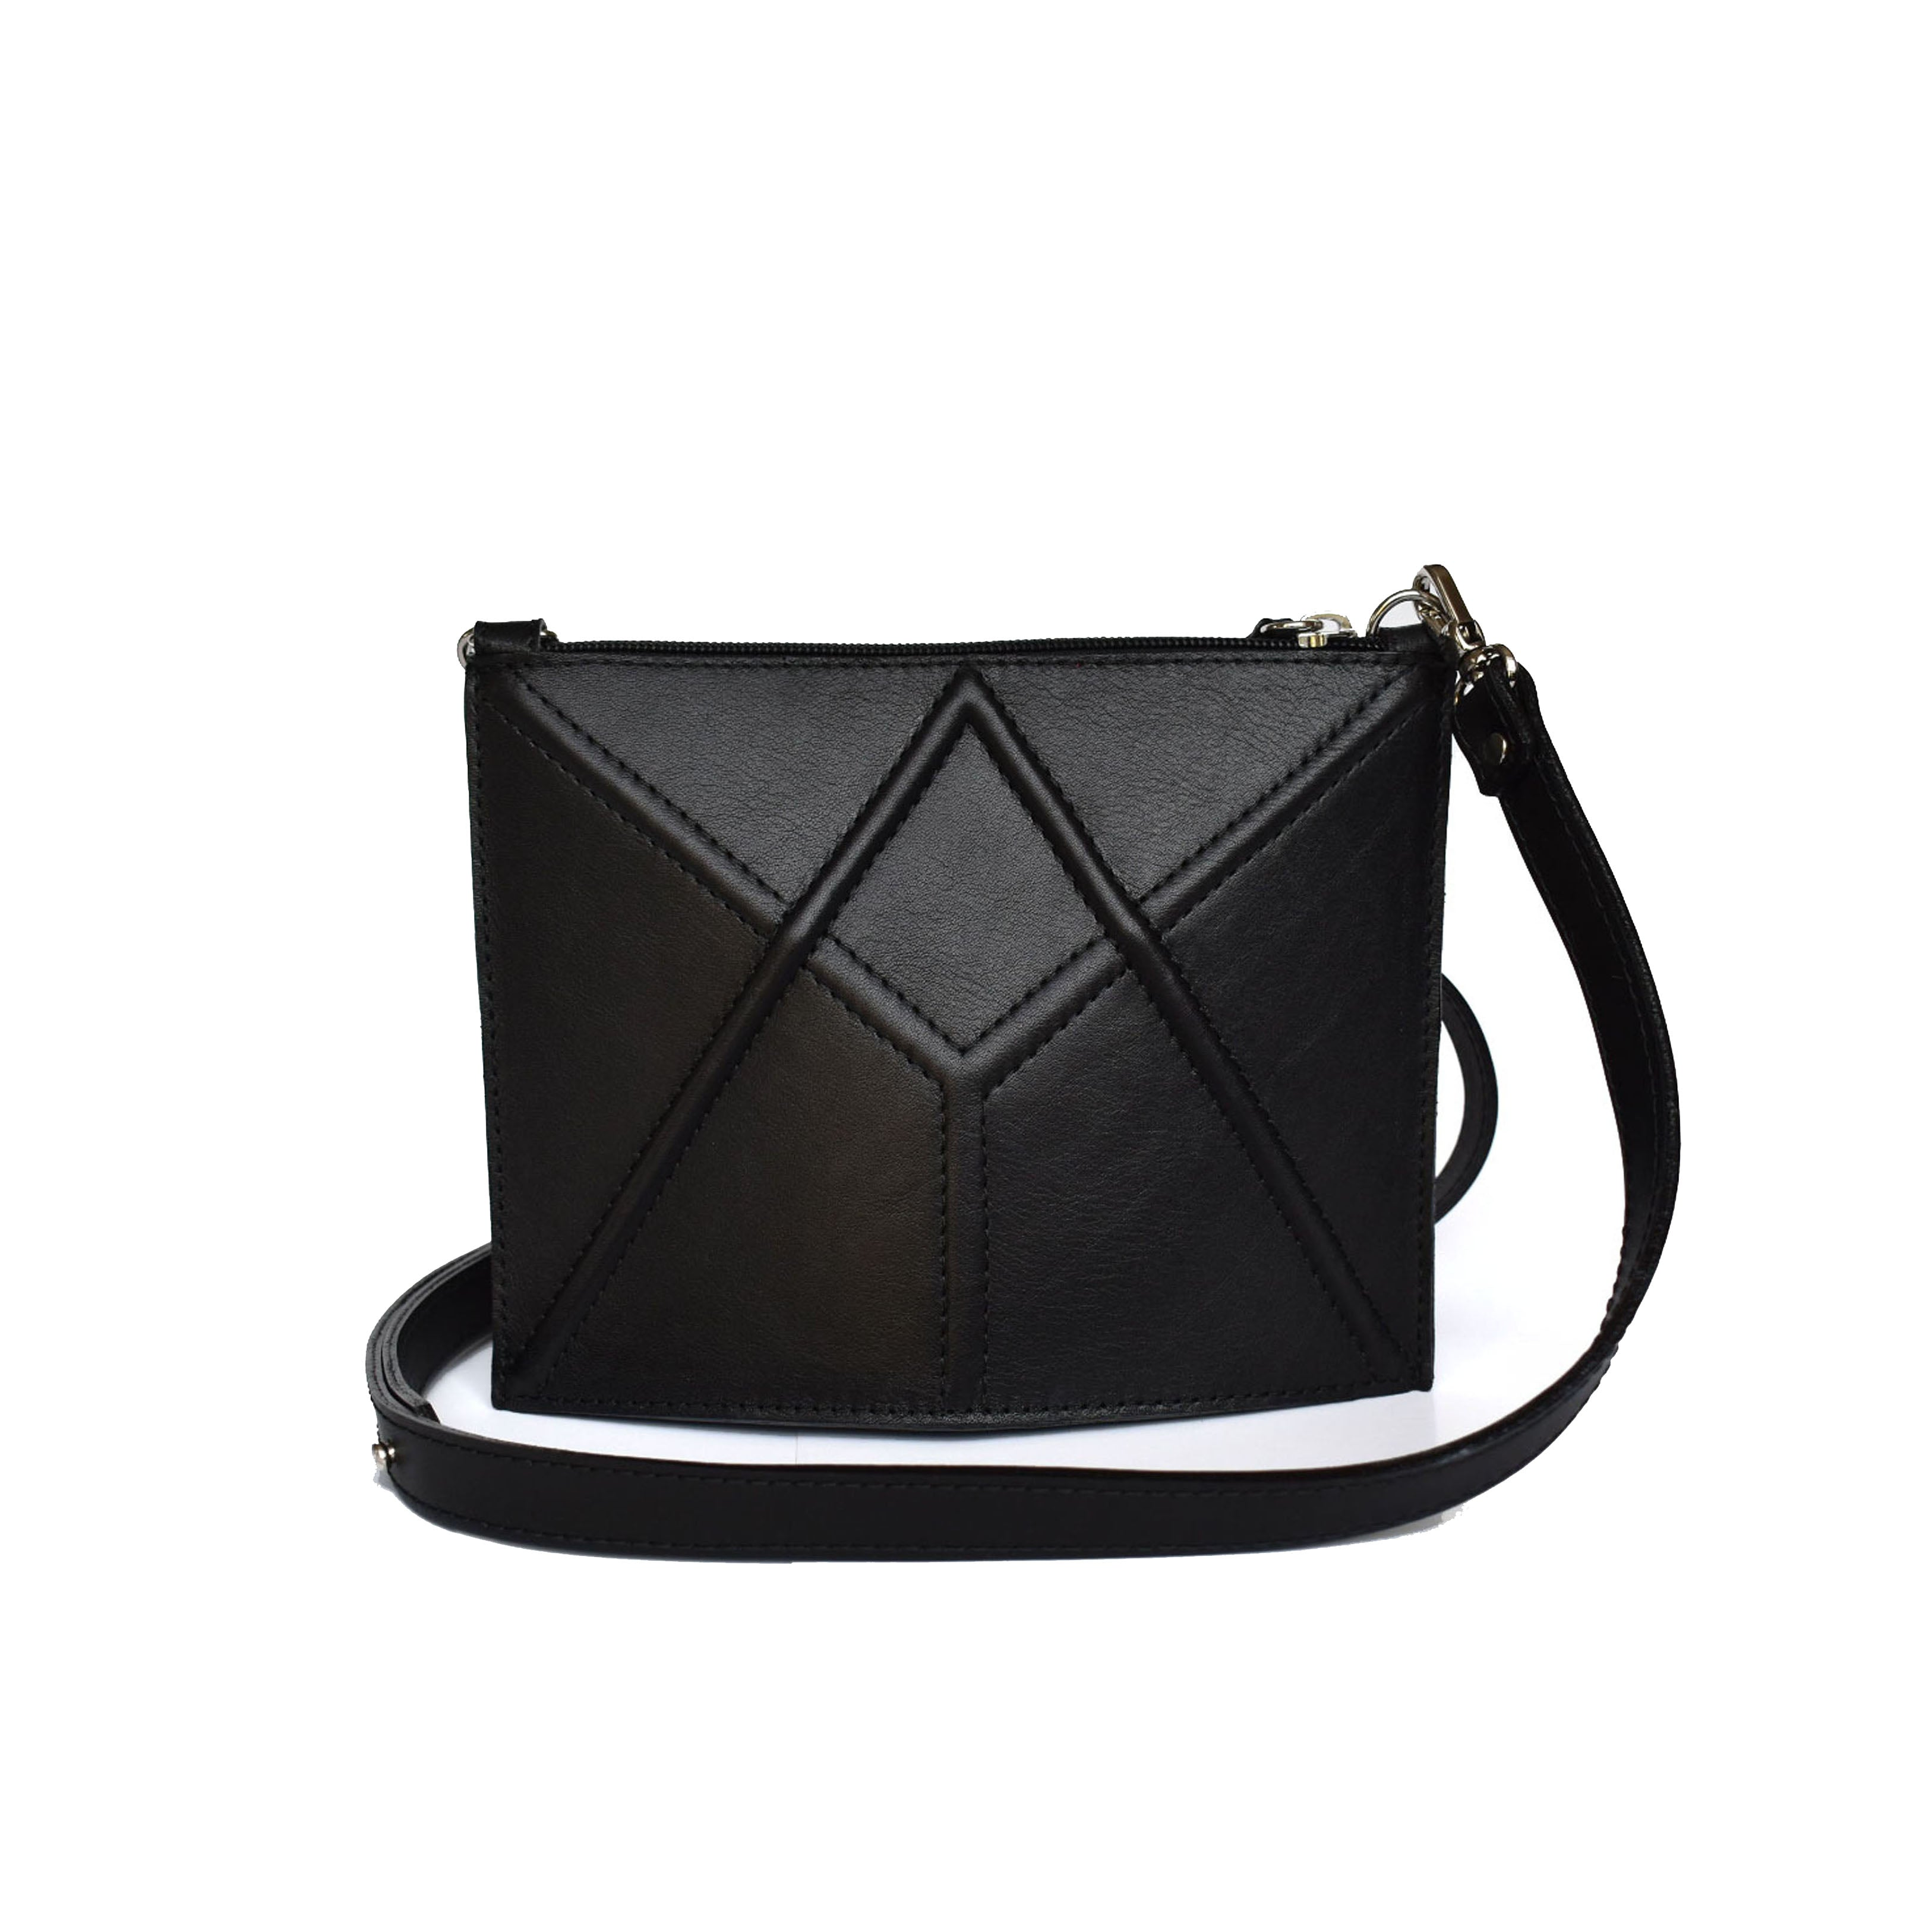 FACET mini bag